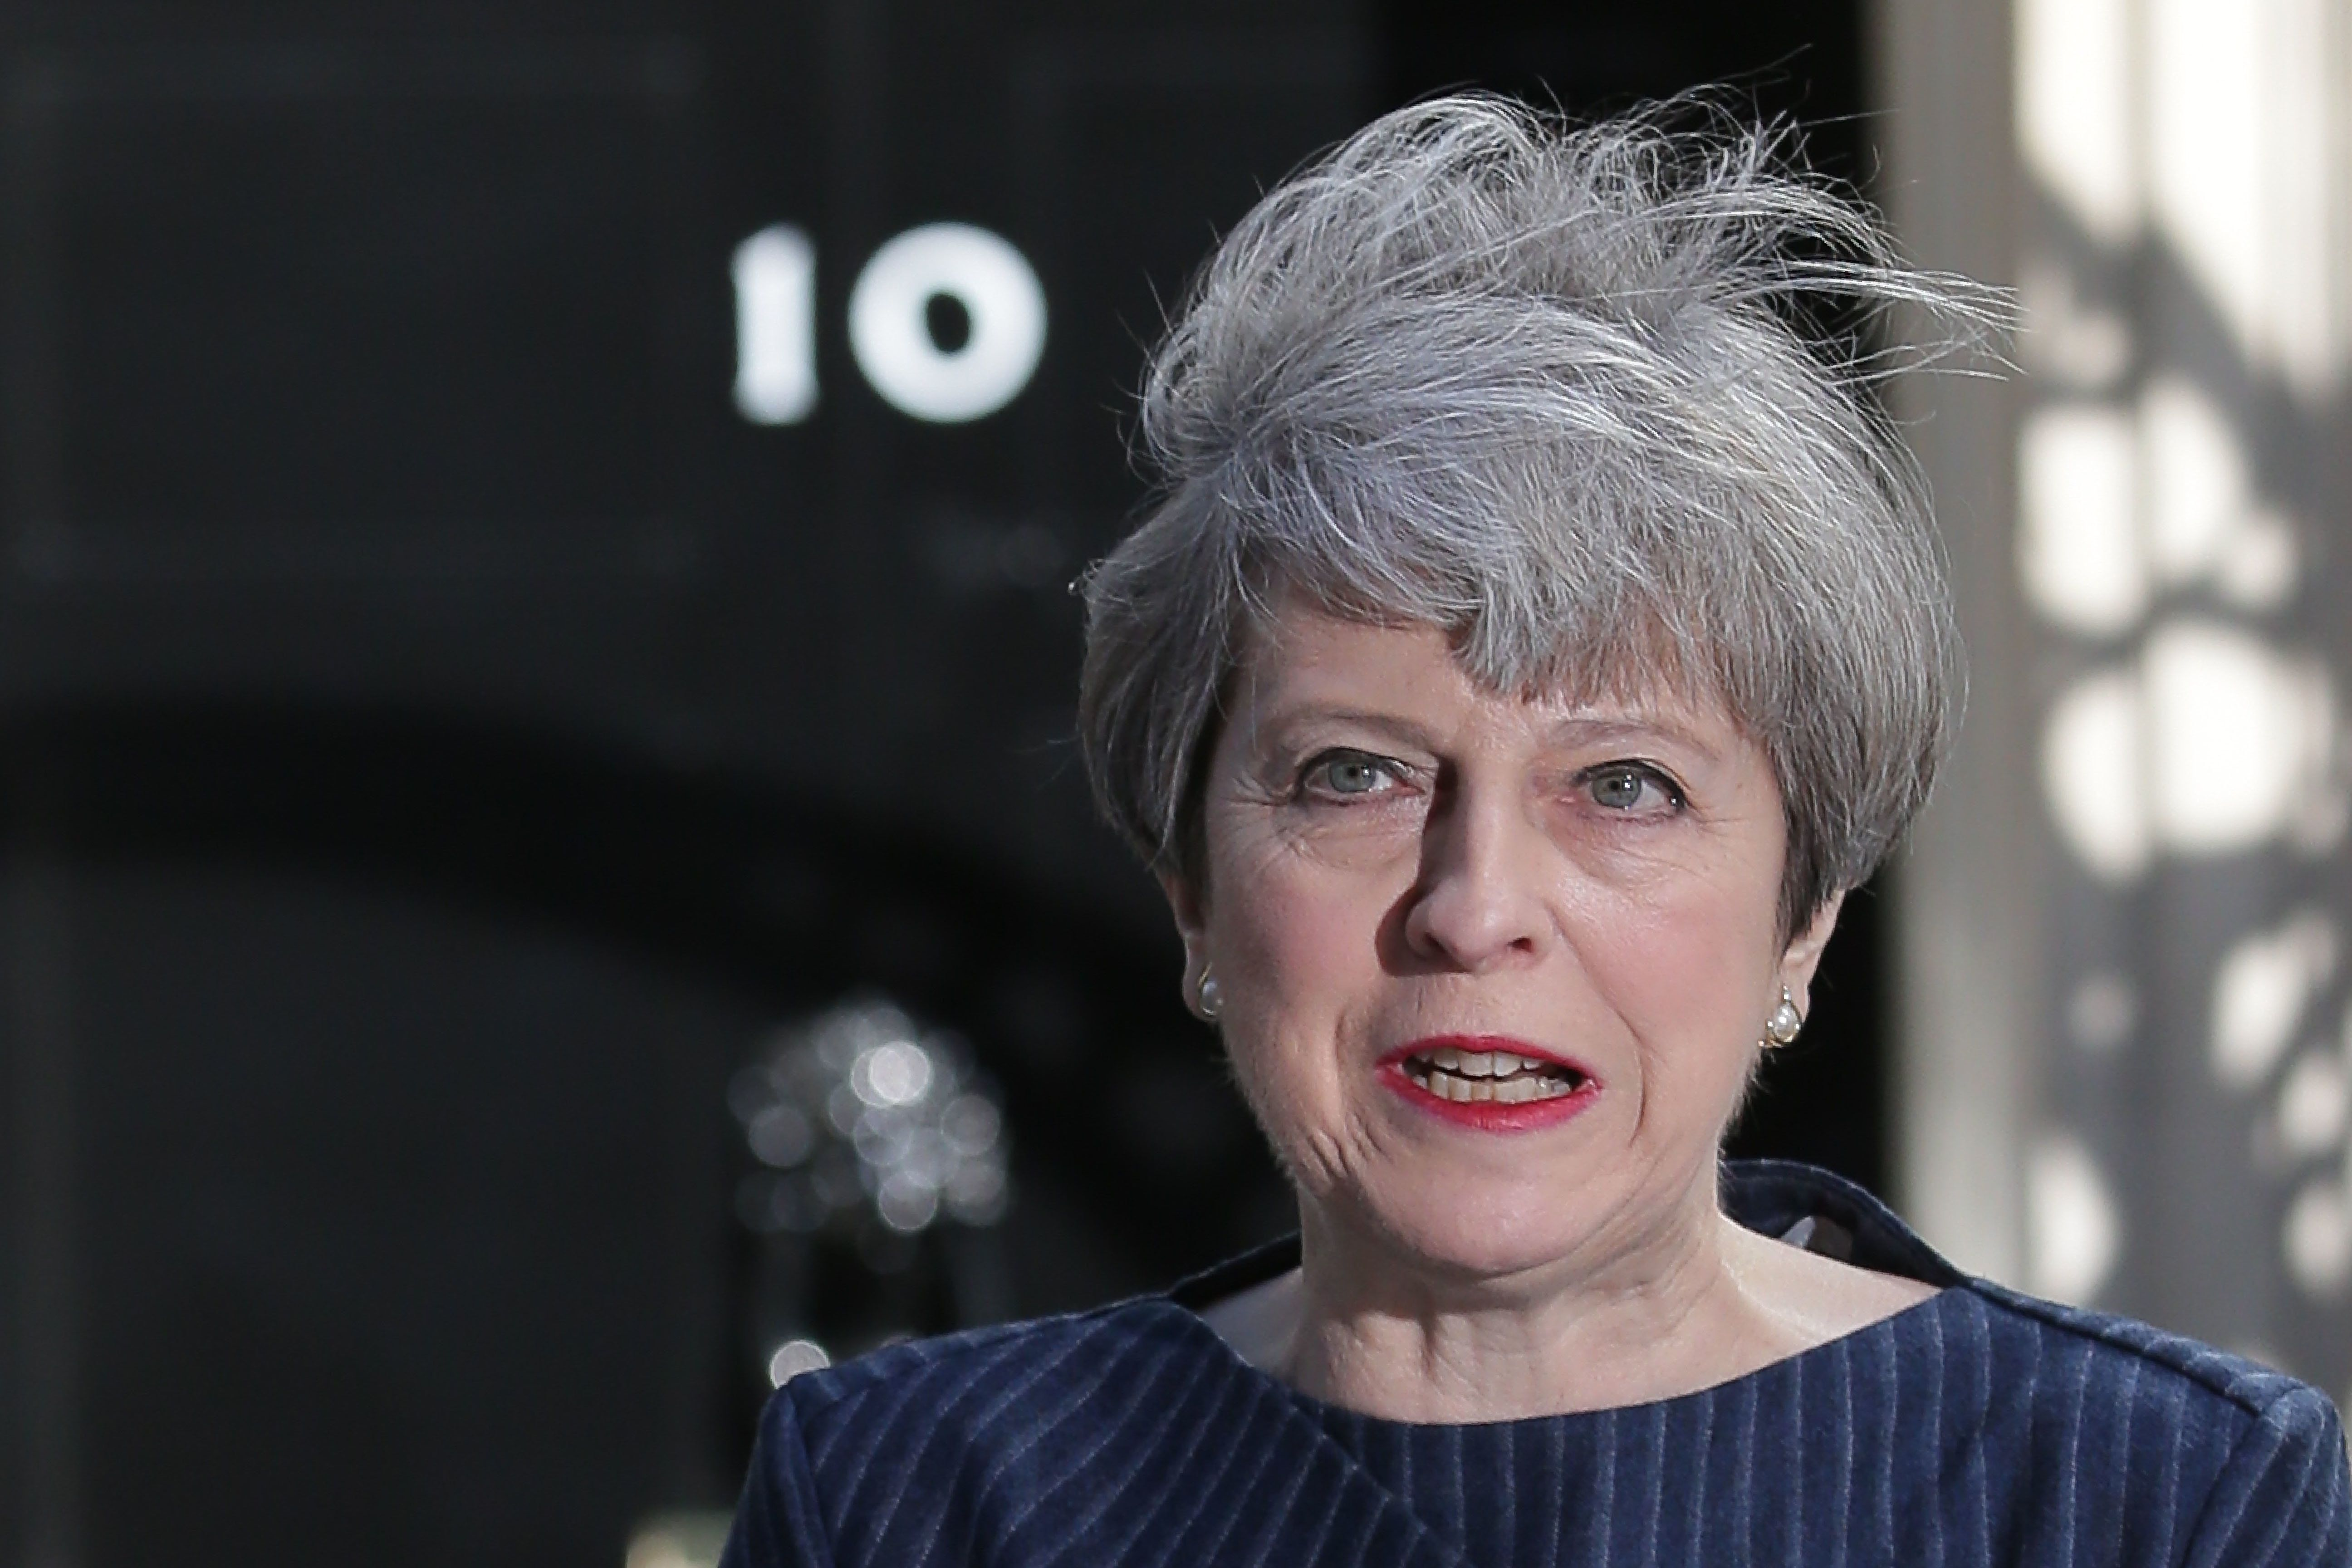 Theresa May said on Tuesday that she was seeking a snap